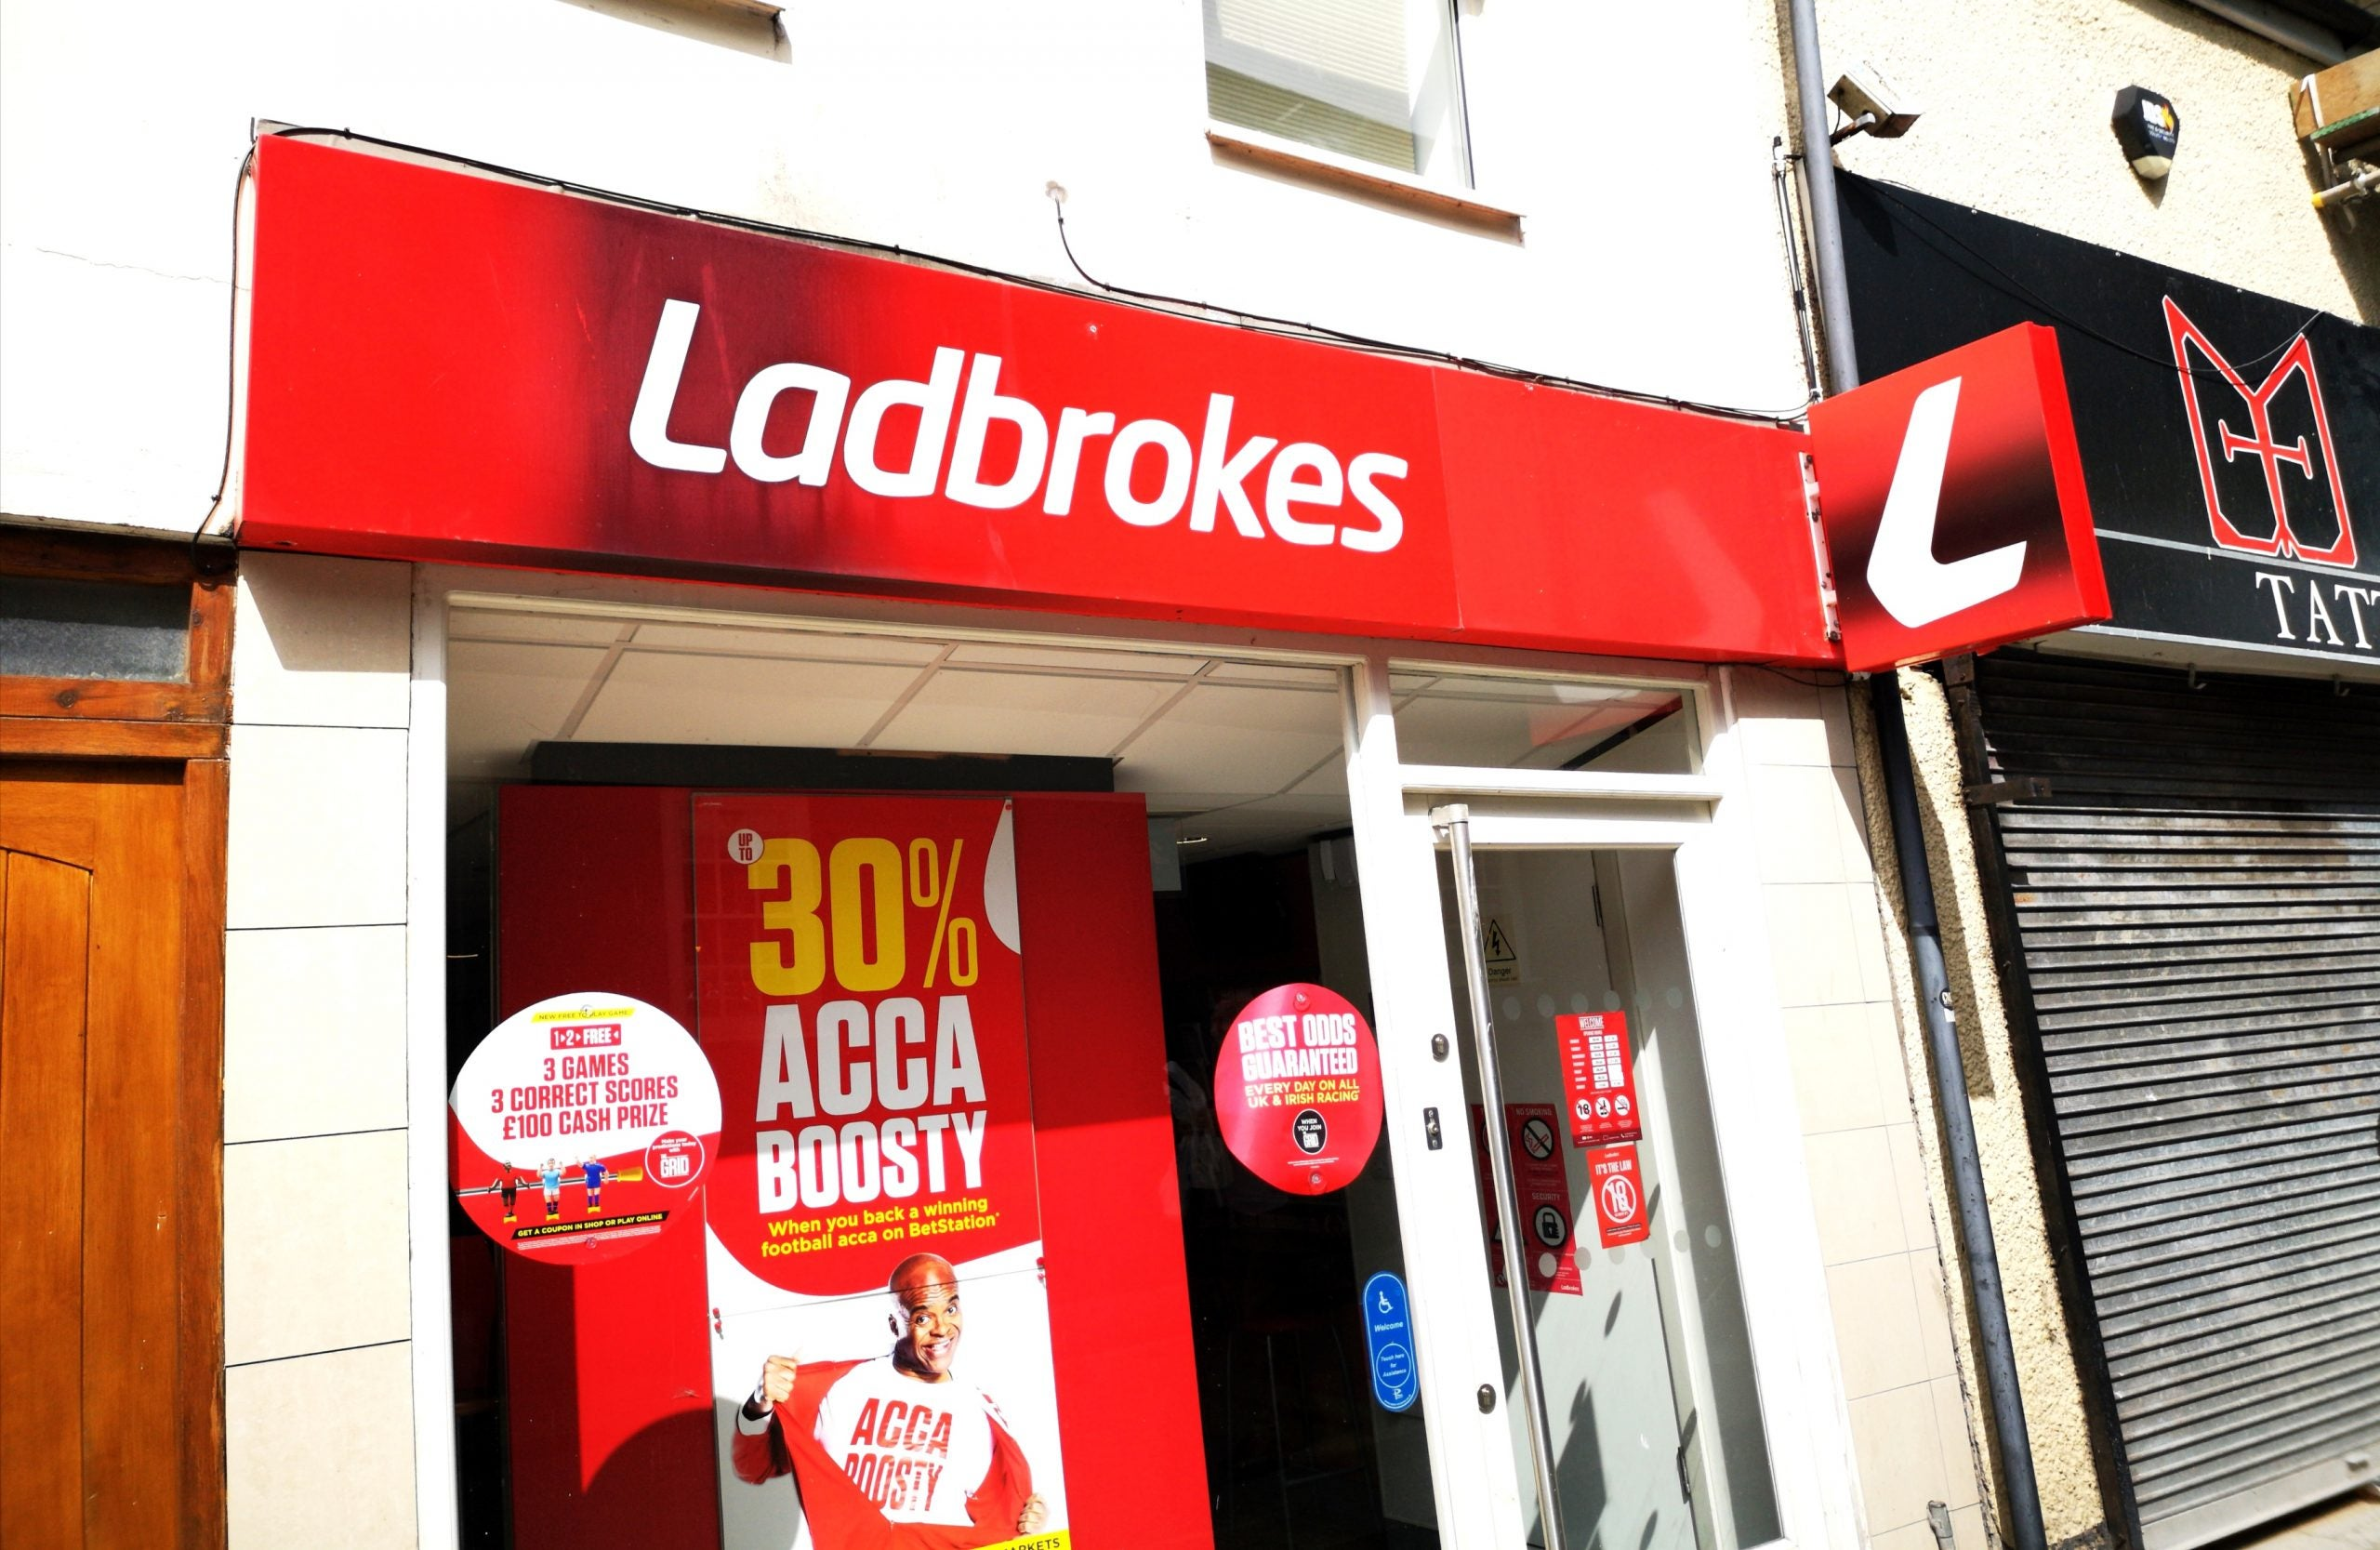 Ladbrokes Coral owner forecasts £50m earnings boost after Covid online betting surge